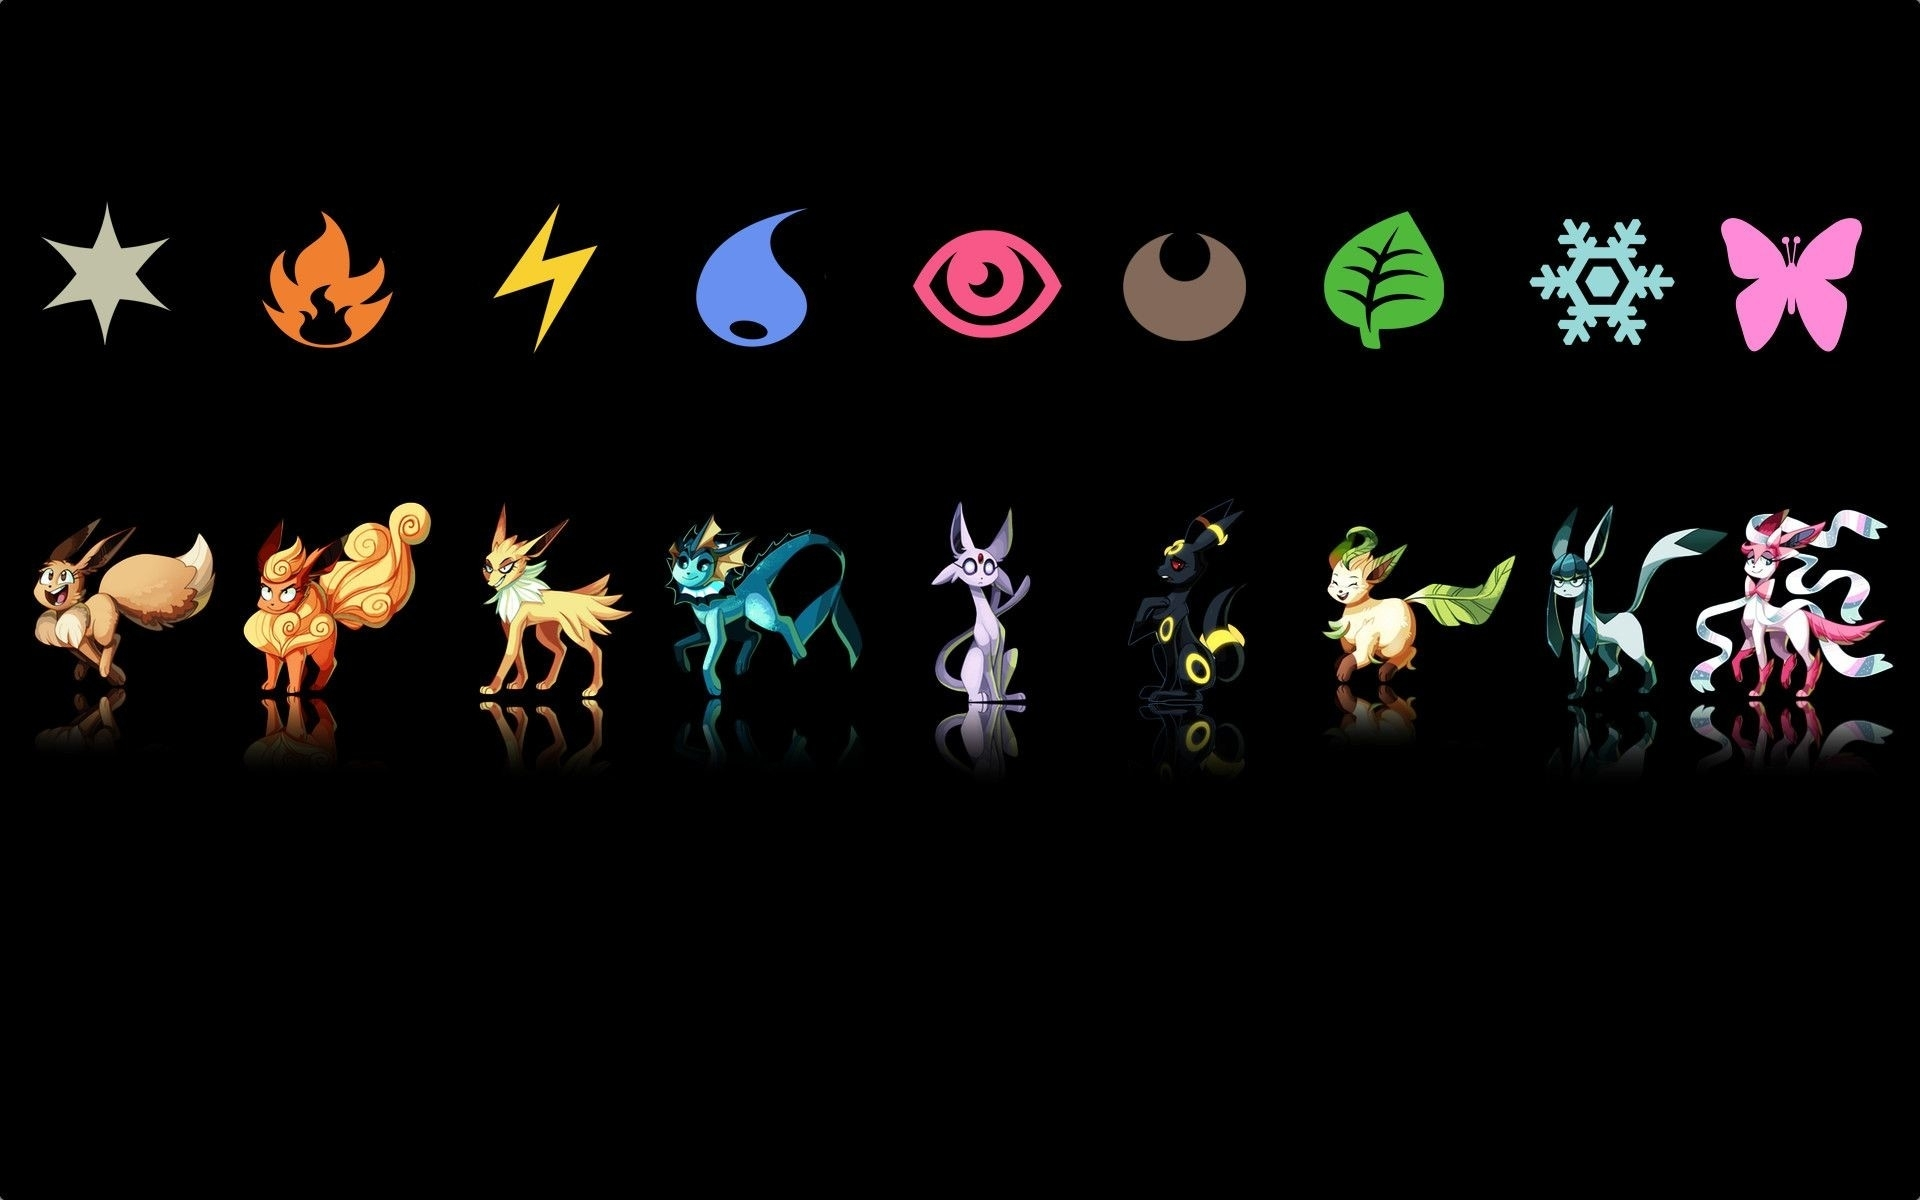 eevee evolution wallpaper (71+ images)